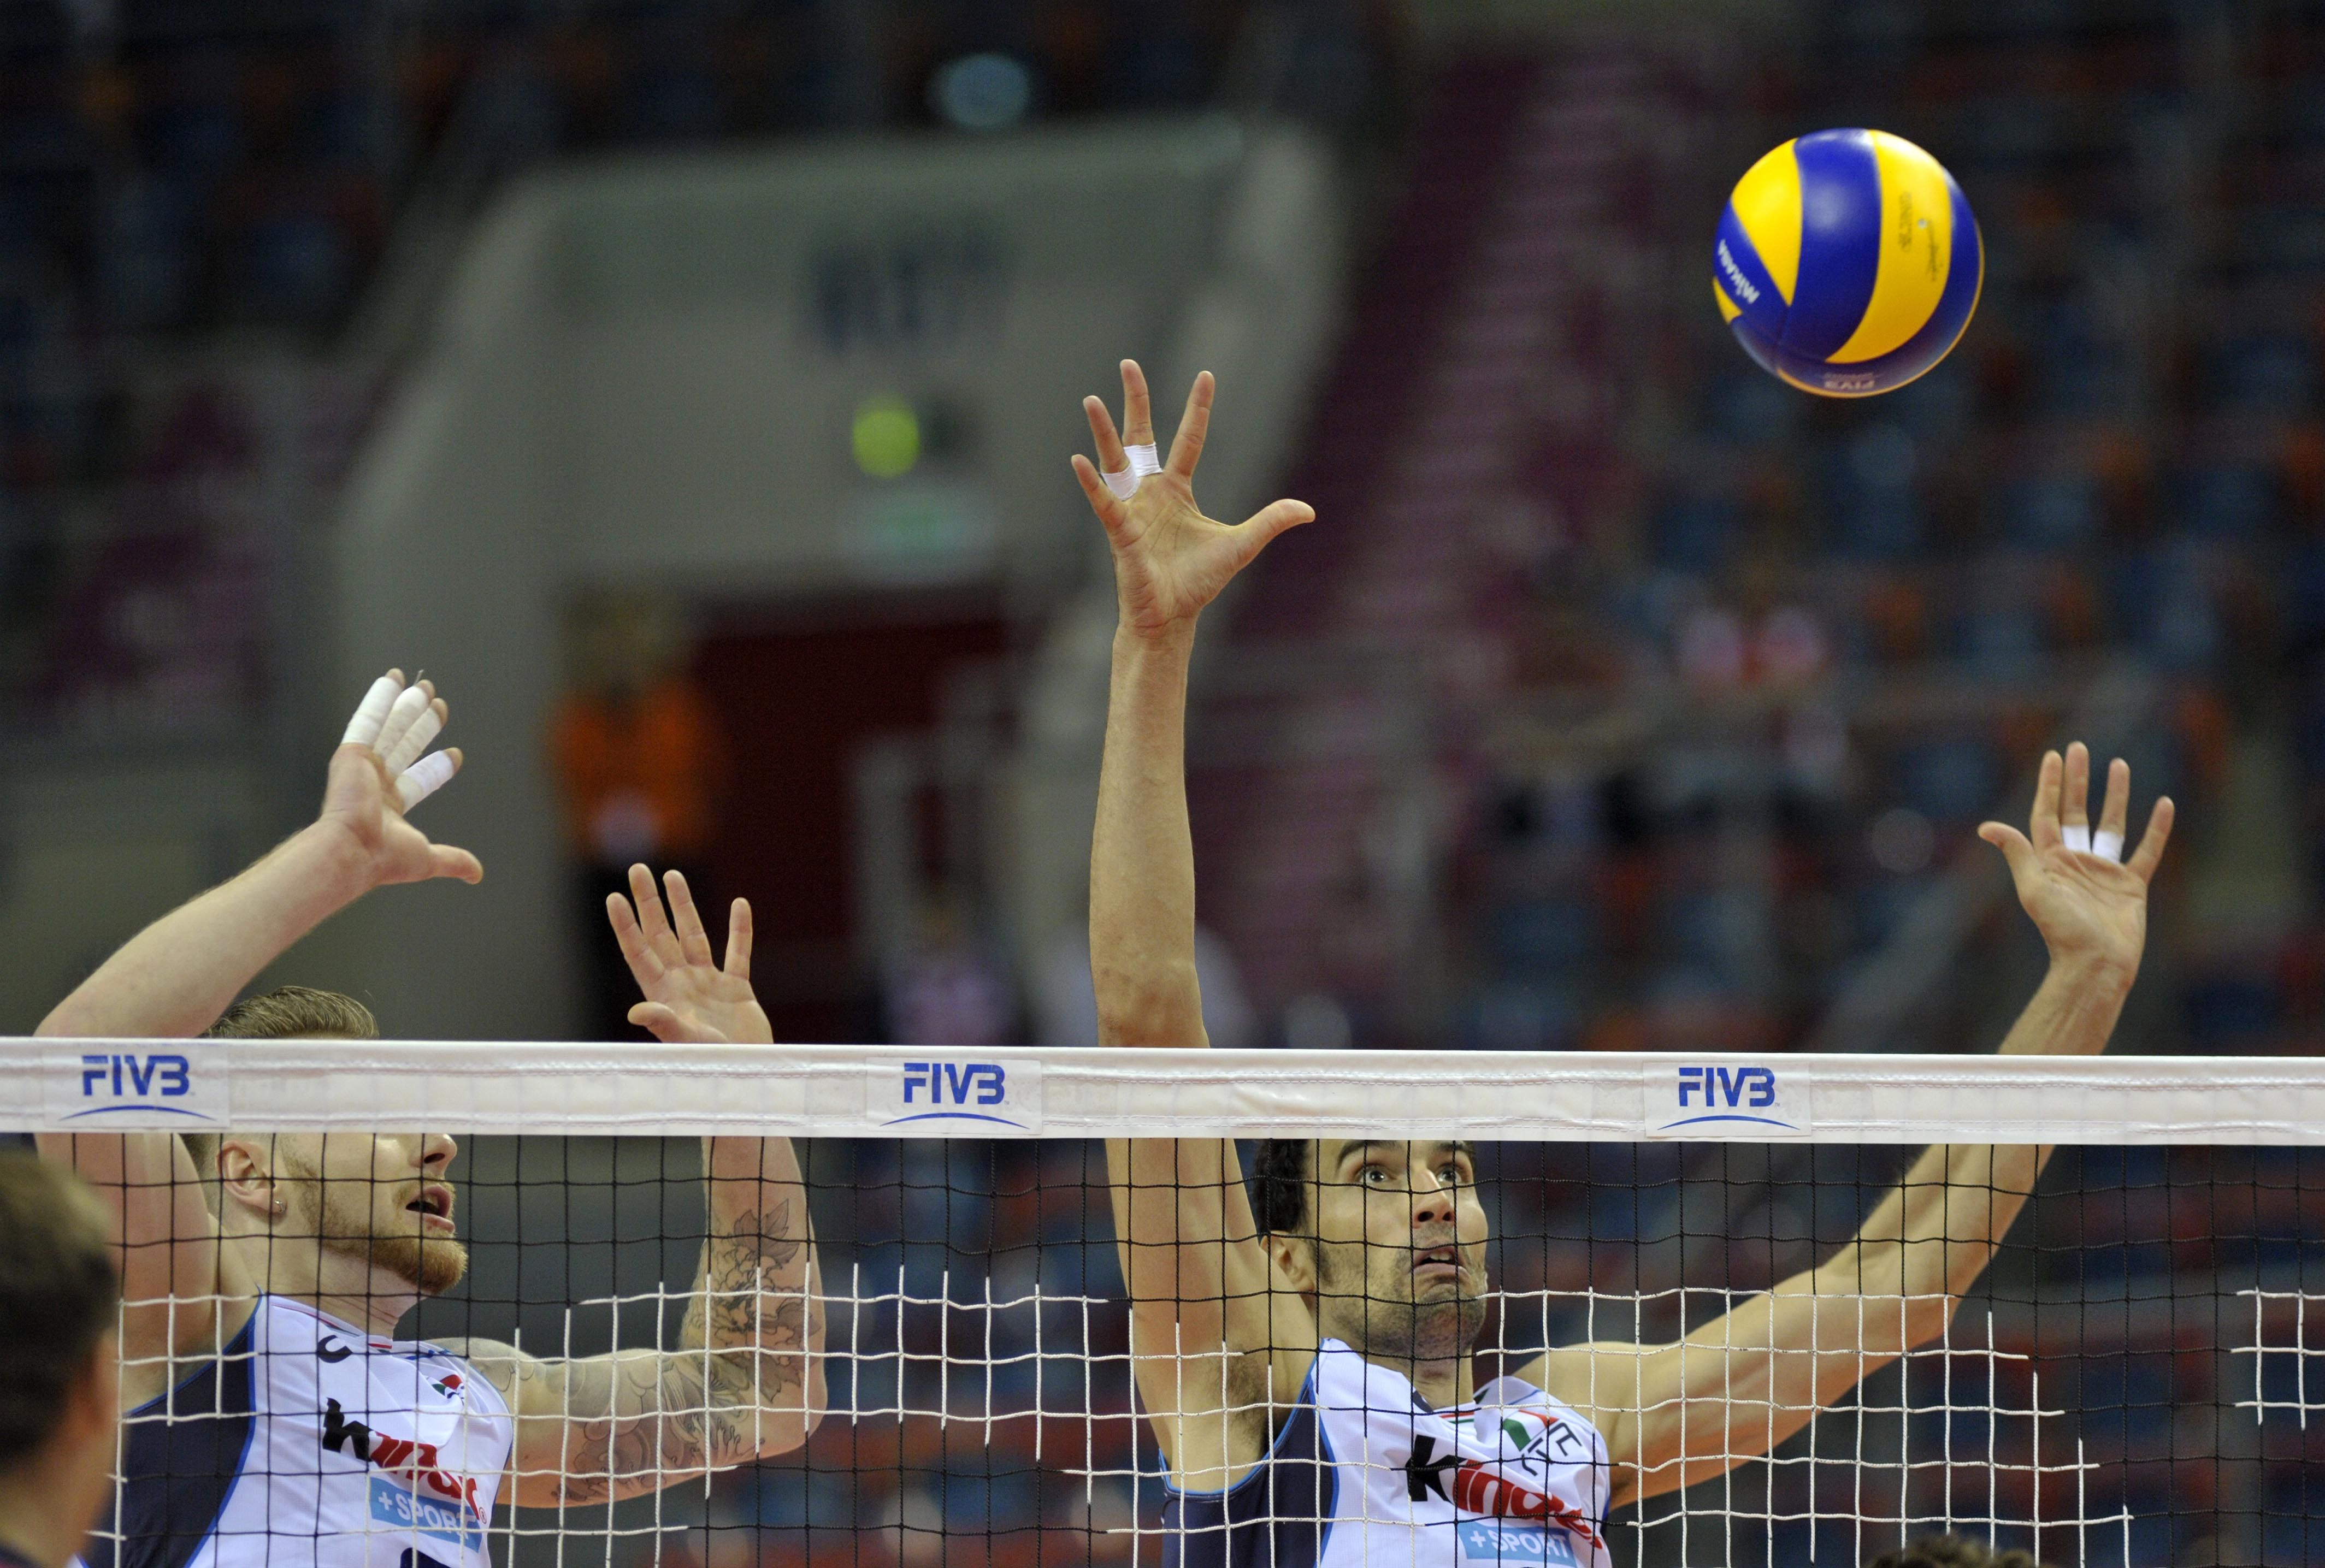 Ivan Zaytsev And Emanuele Birarelli During The Match In 2020